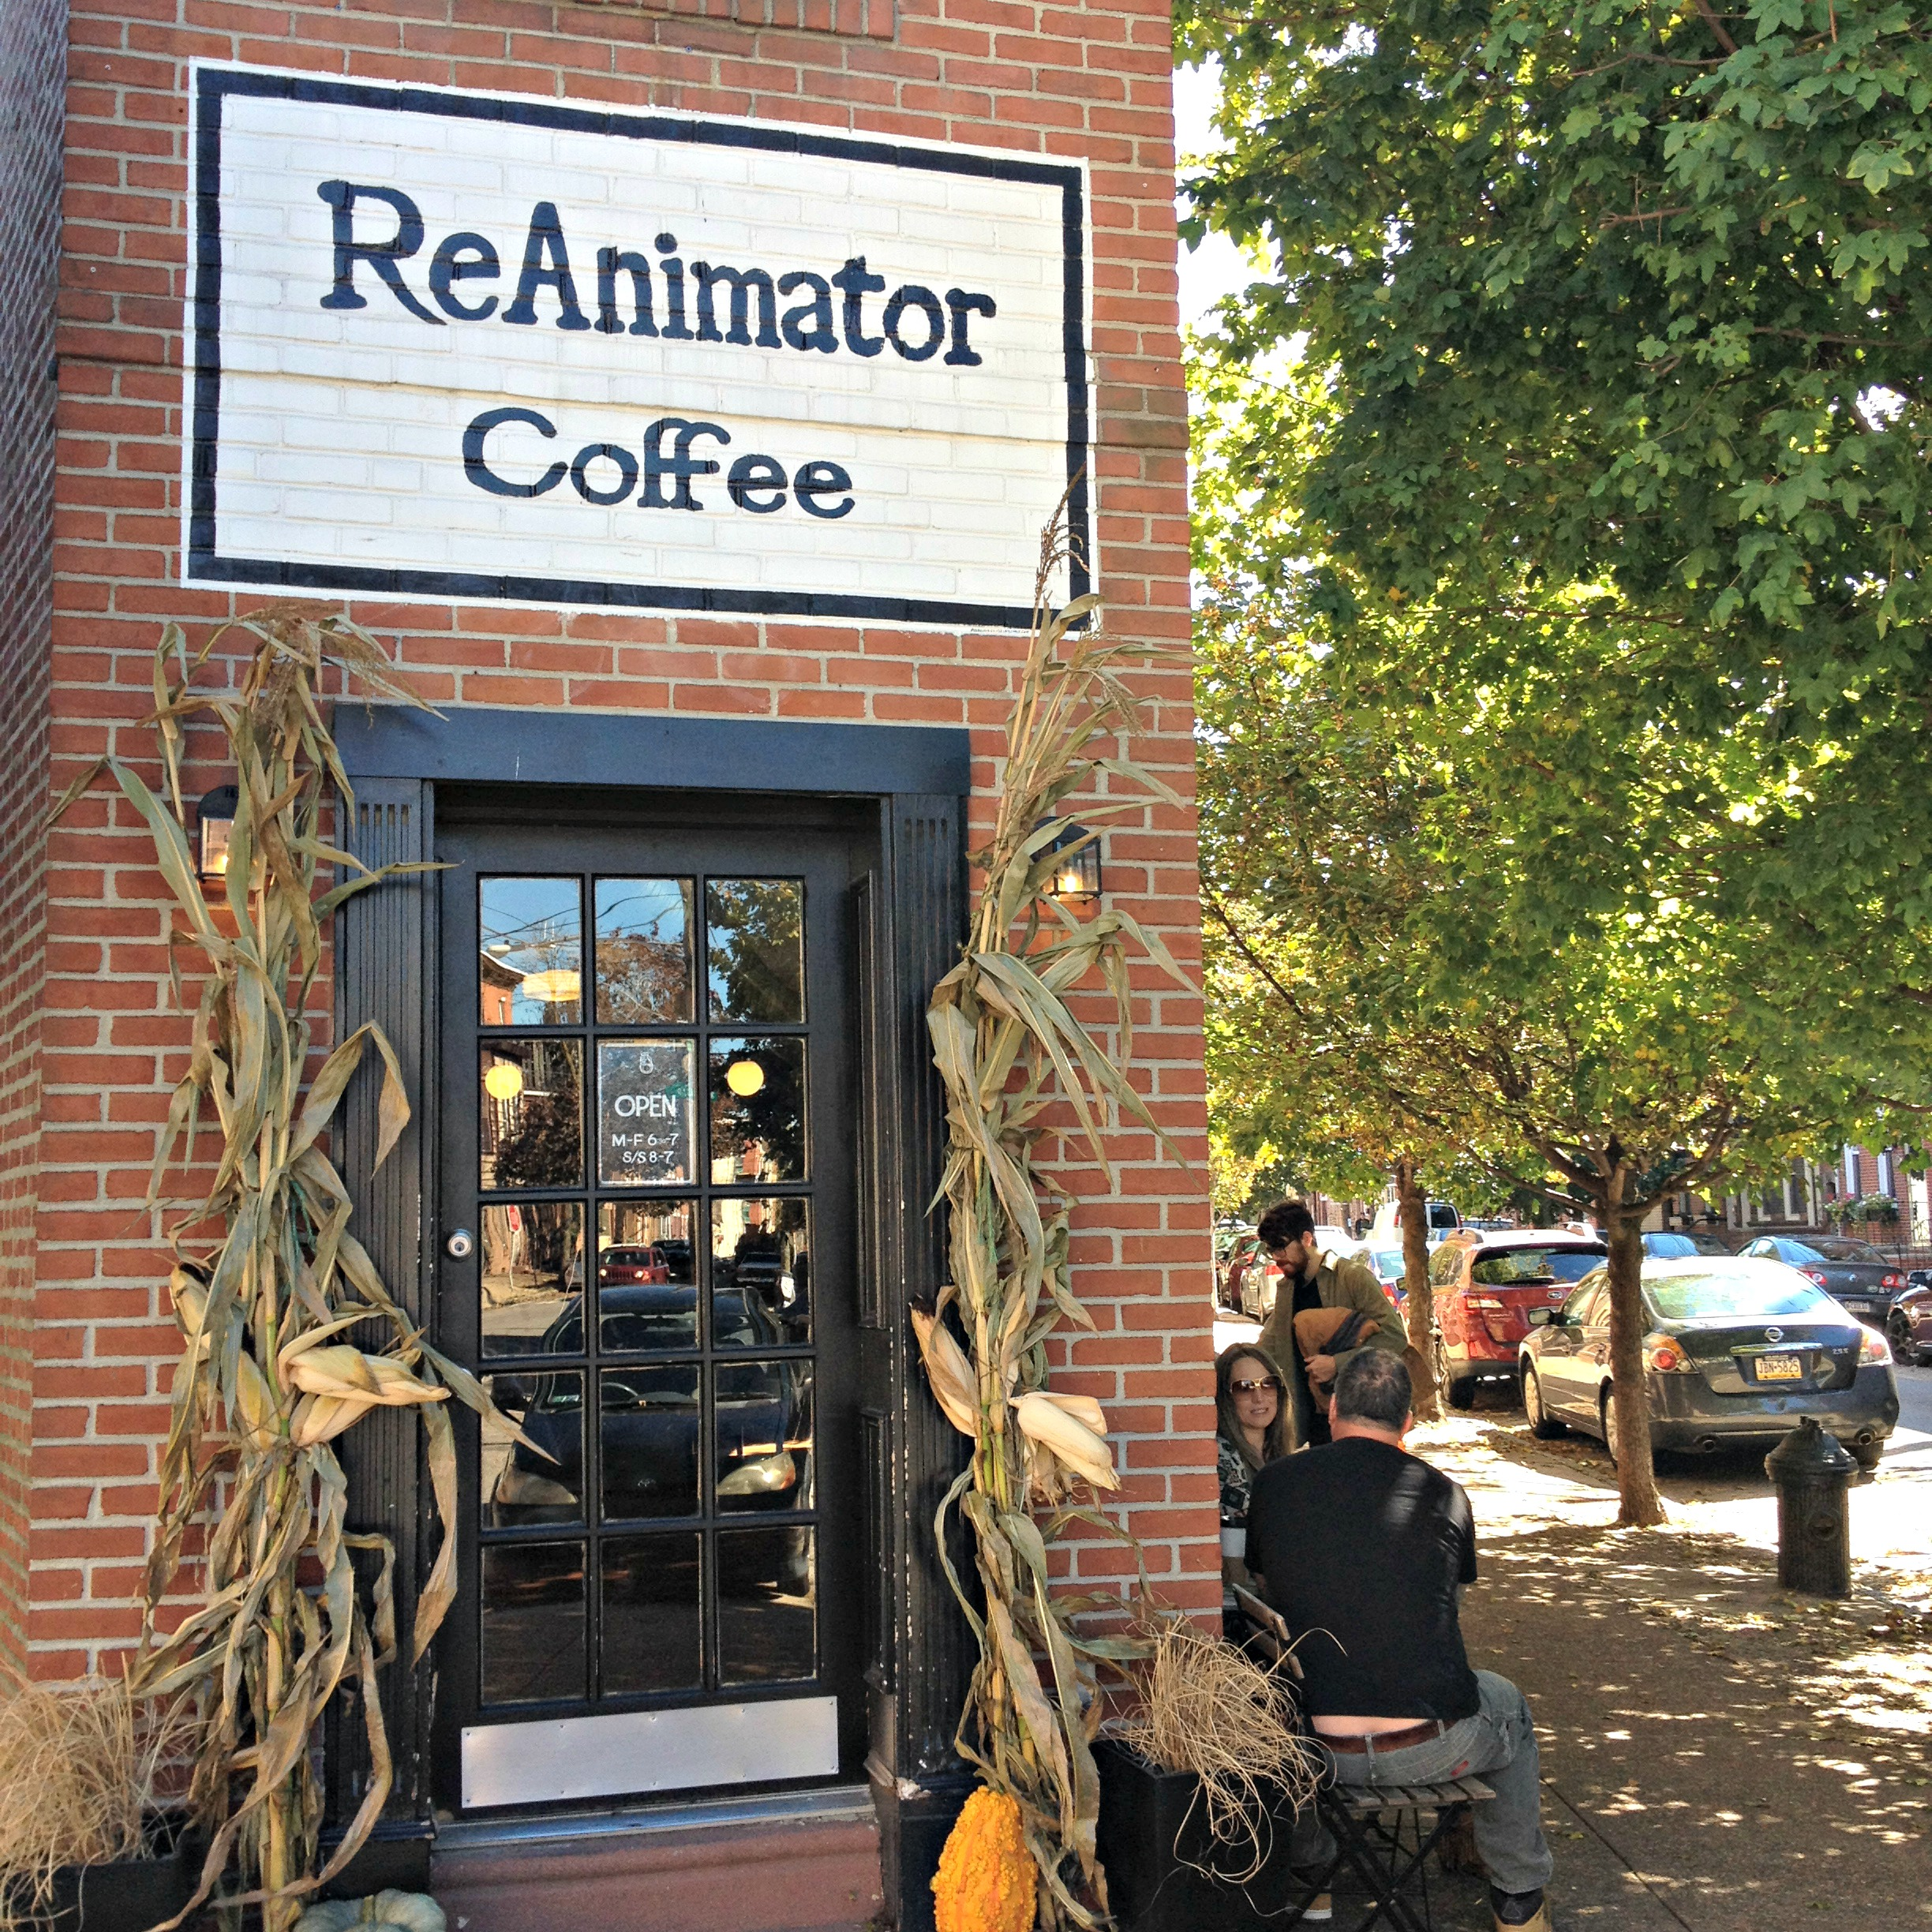 But First: Reanimator Coffee